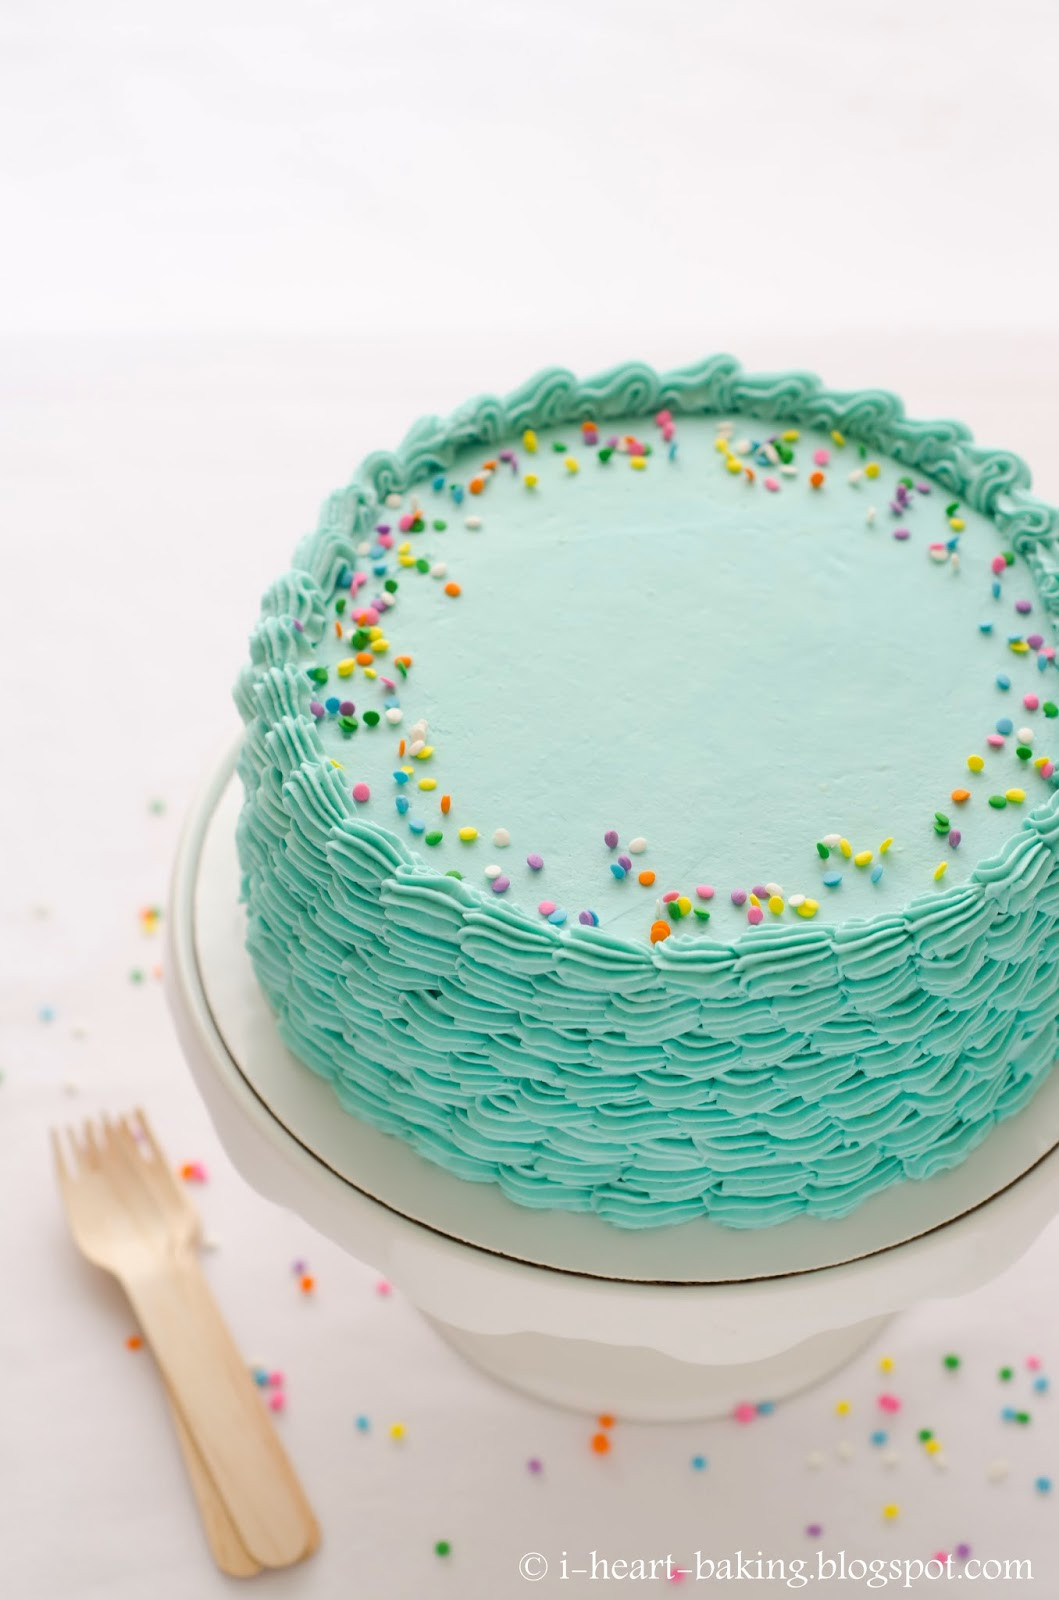 Best ideas about Blue Birthday Cake . Save or Pin i heart baking blue funfetti birthday cake with piped Now.